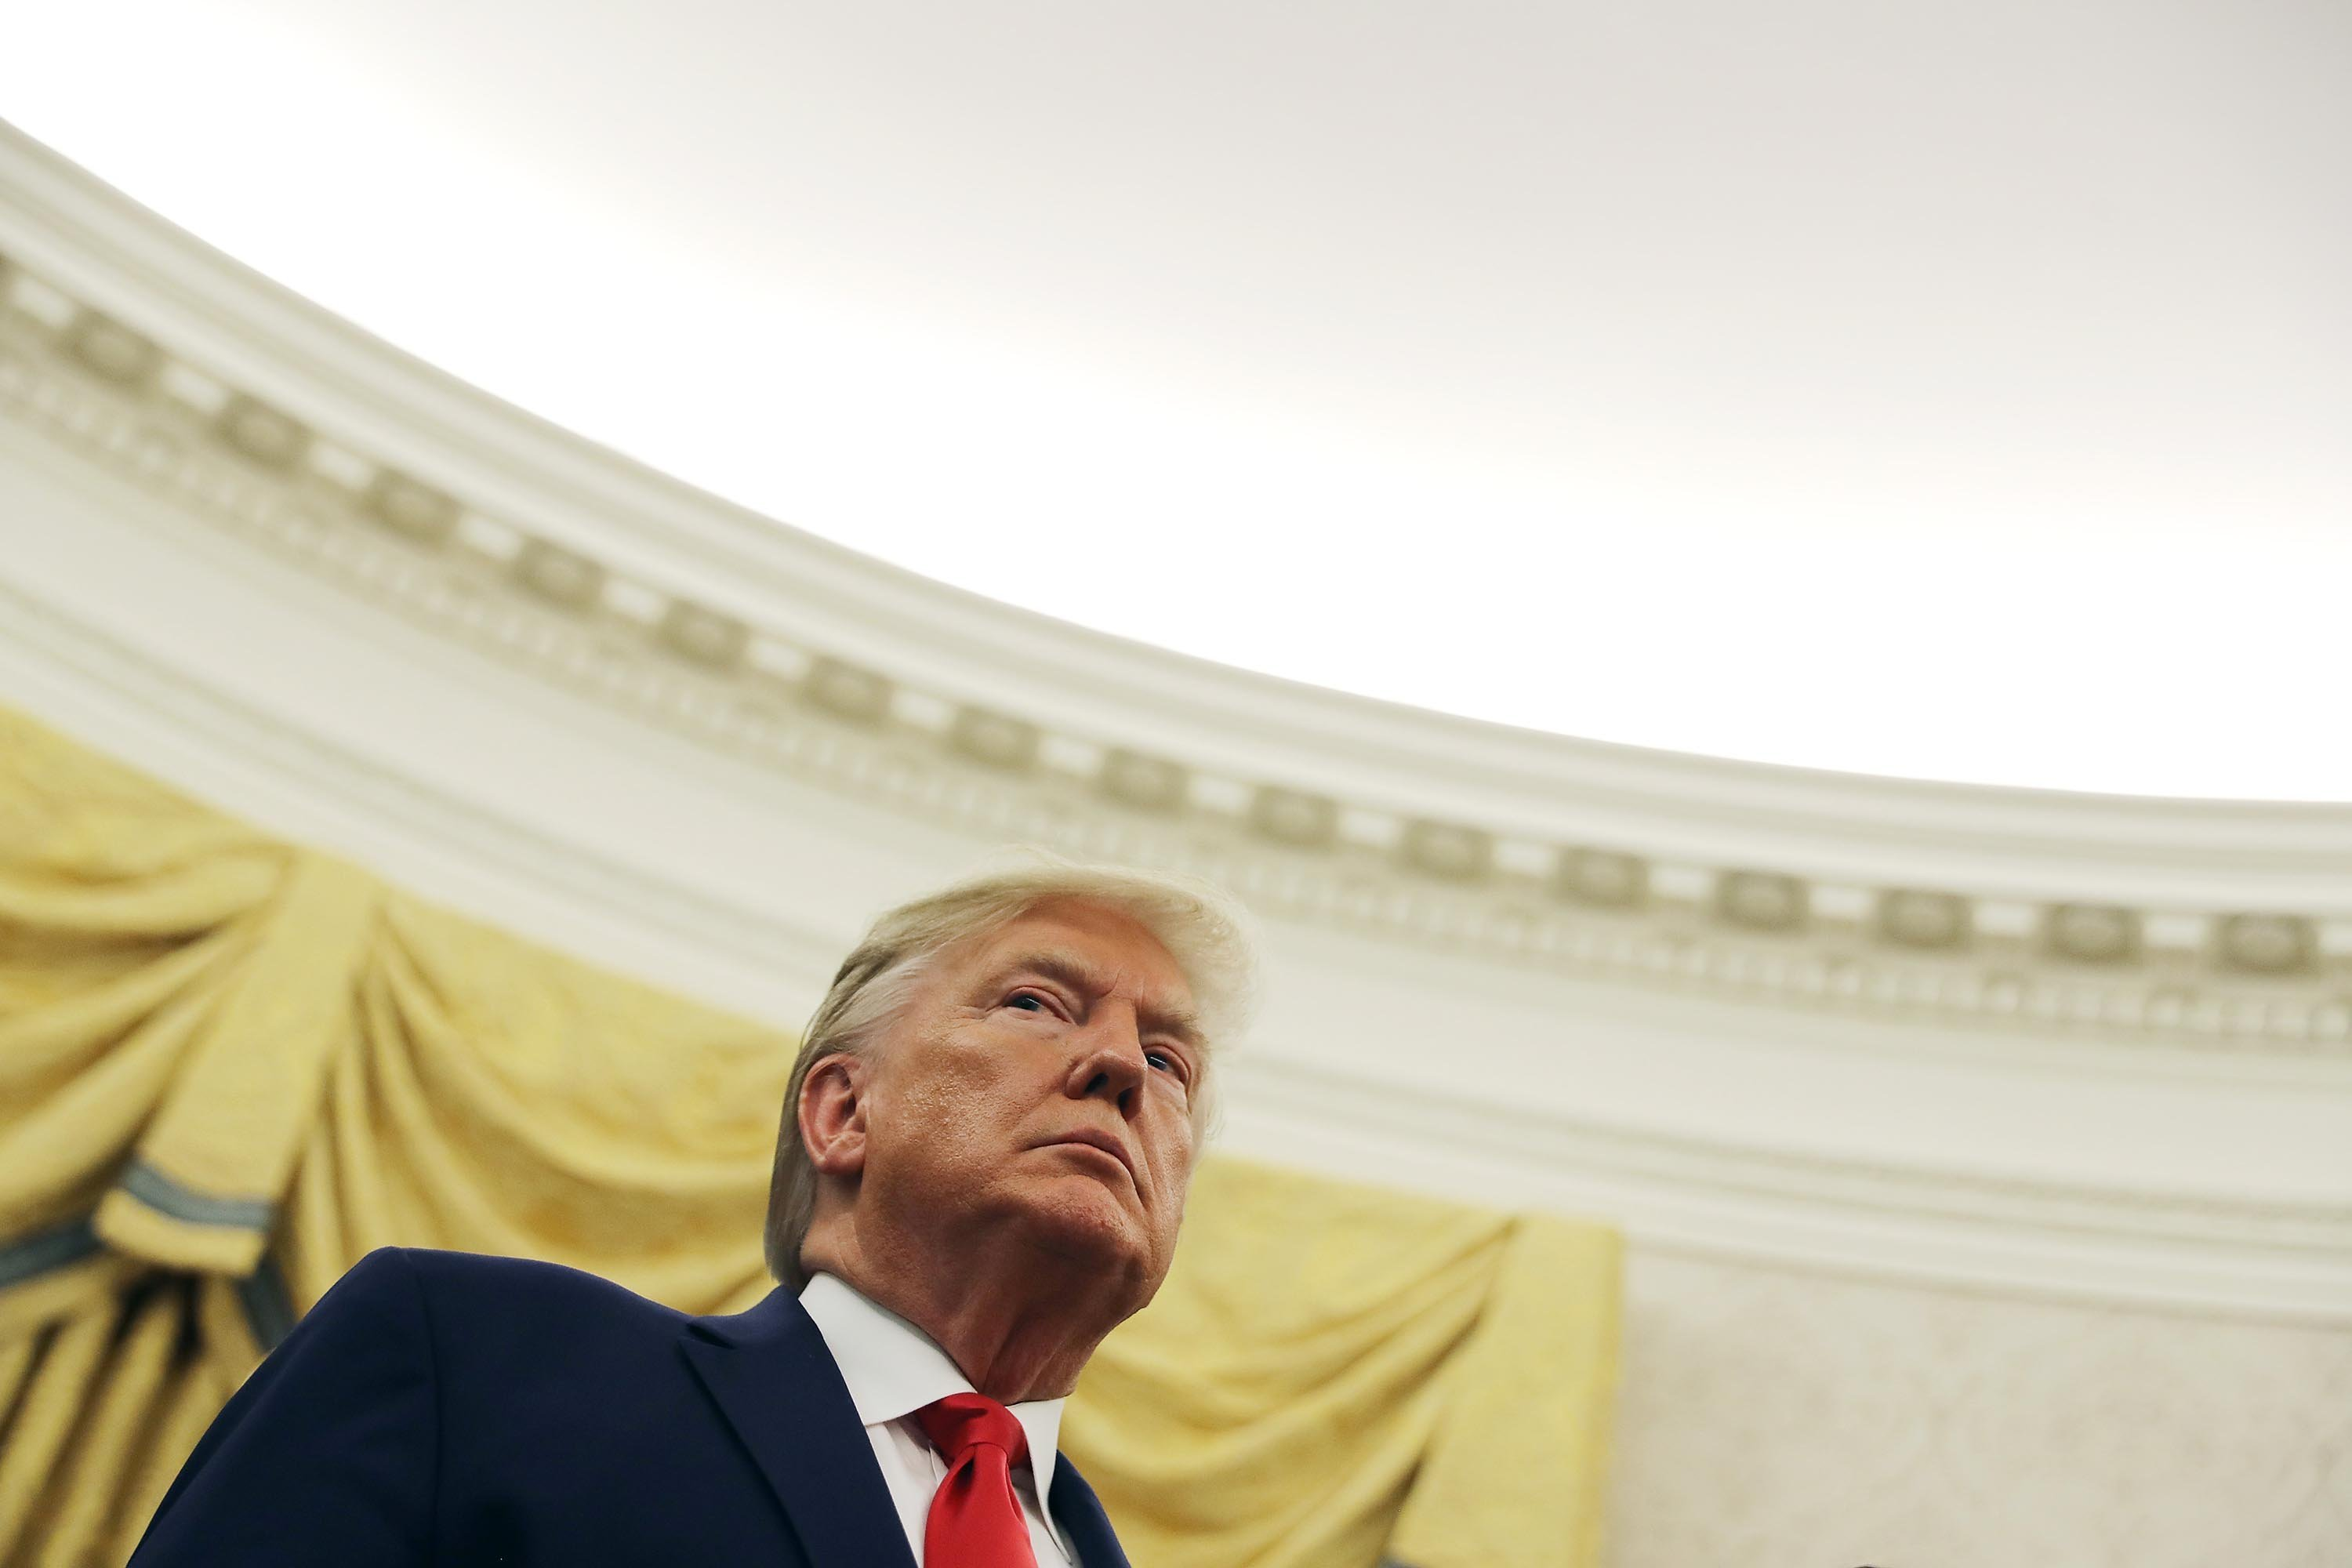 House Republicans lay out central defenses of Trump in memo ahead of public impeachment hearings